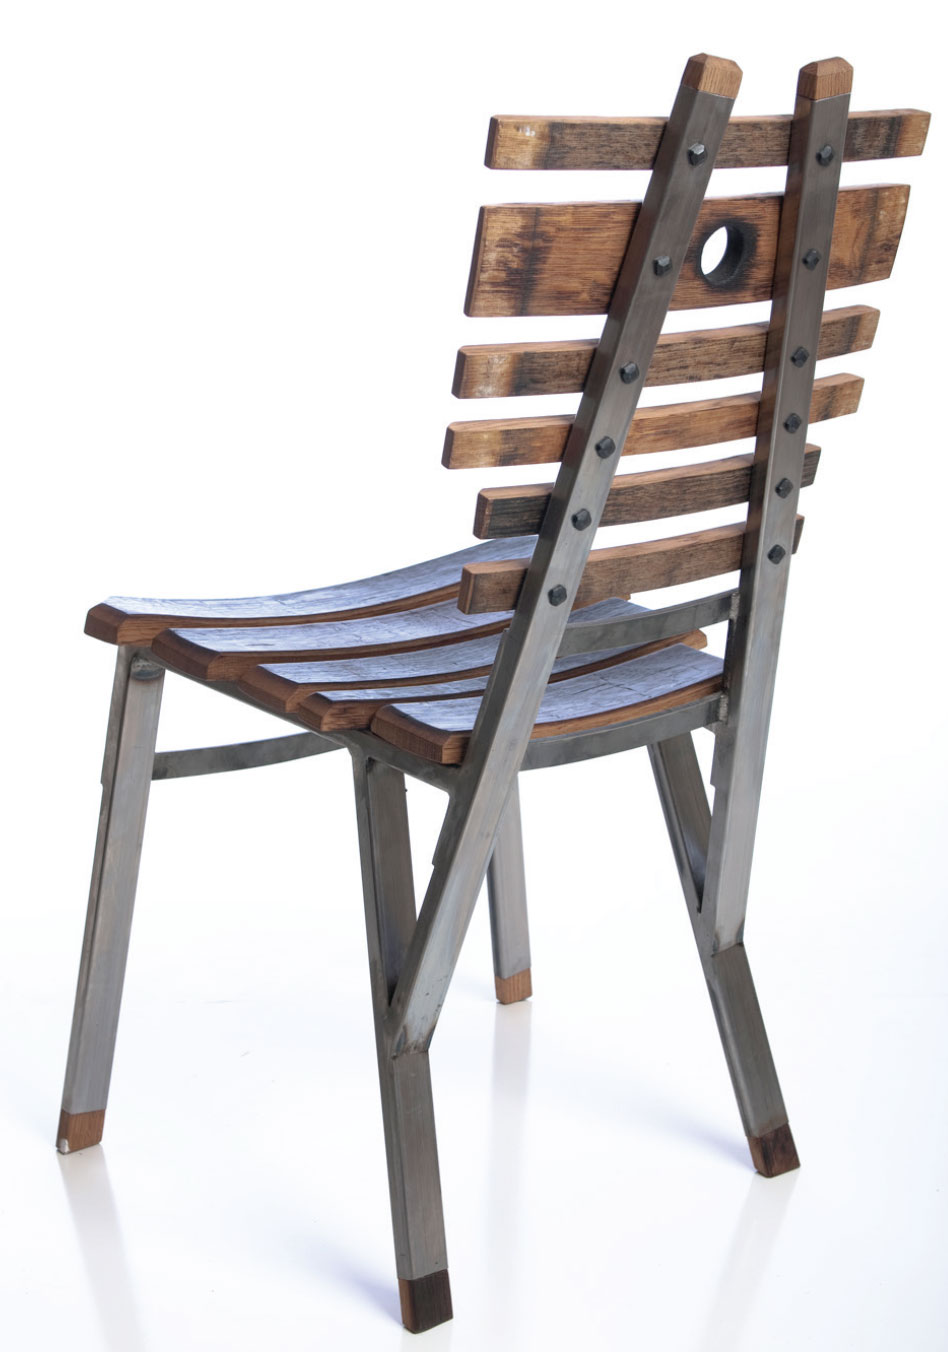 Working with Wood- Park City Chair